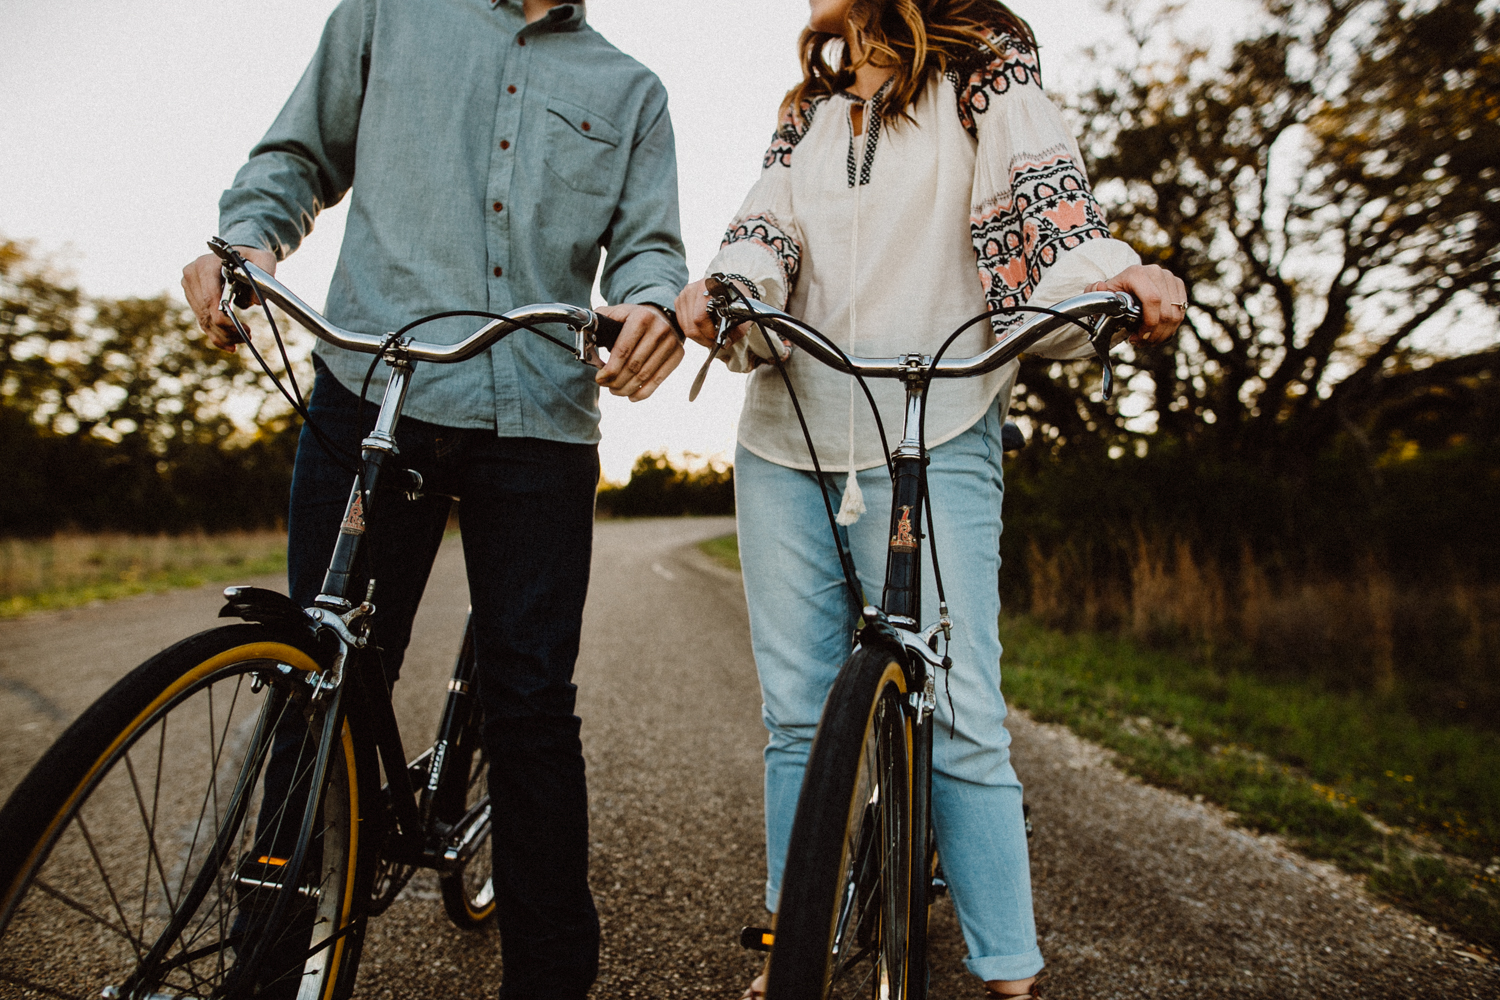 engagement session on bikes